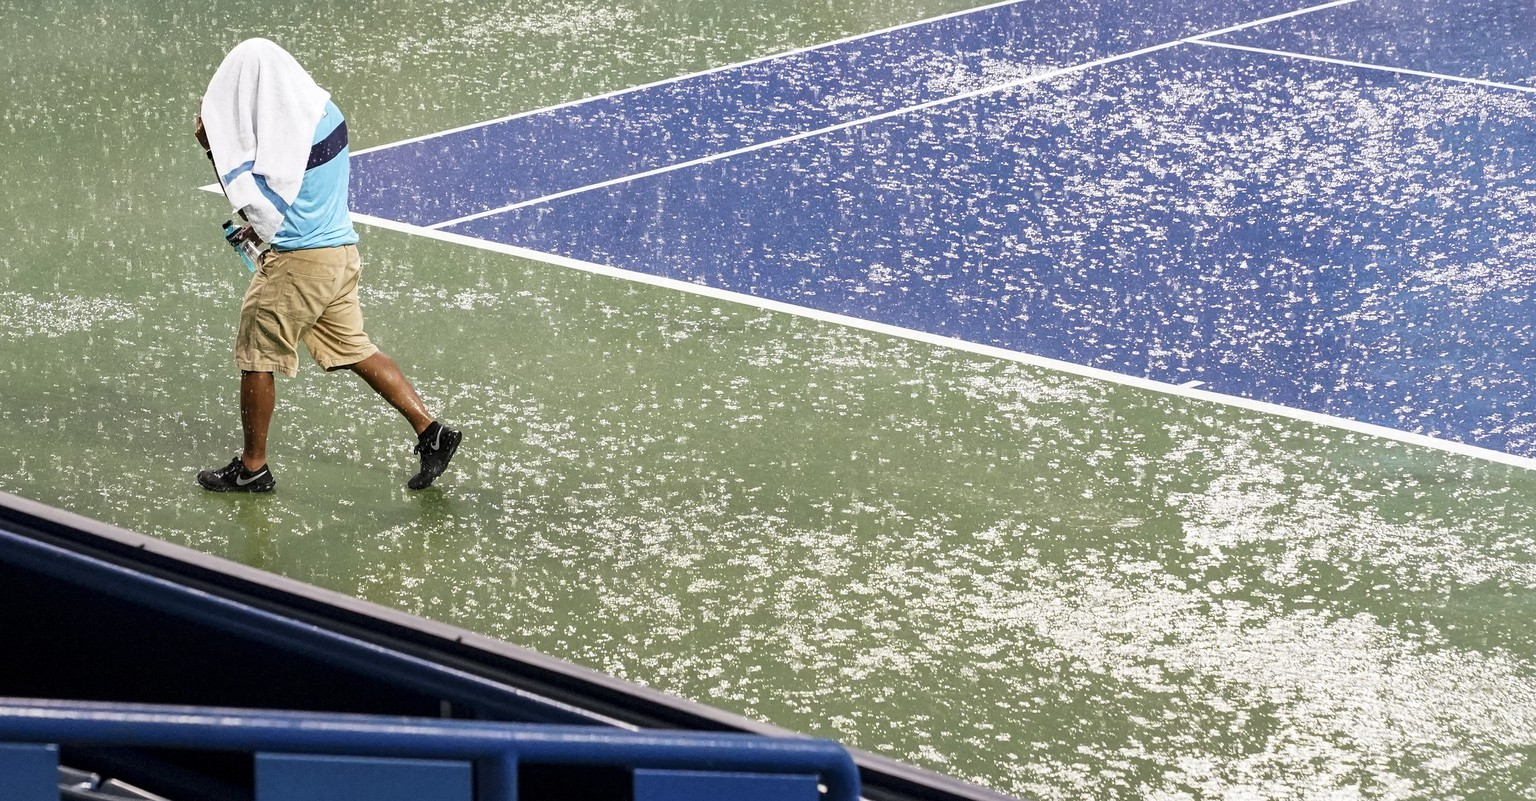 A court attendant moves toward shelter after play was suspended due to rain at the Western & Southern Open tennis tournament Thursday, Aug. 16, 2018, in Mason, Ohio. (AP Photo/John Minchillo)